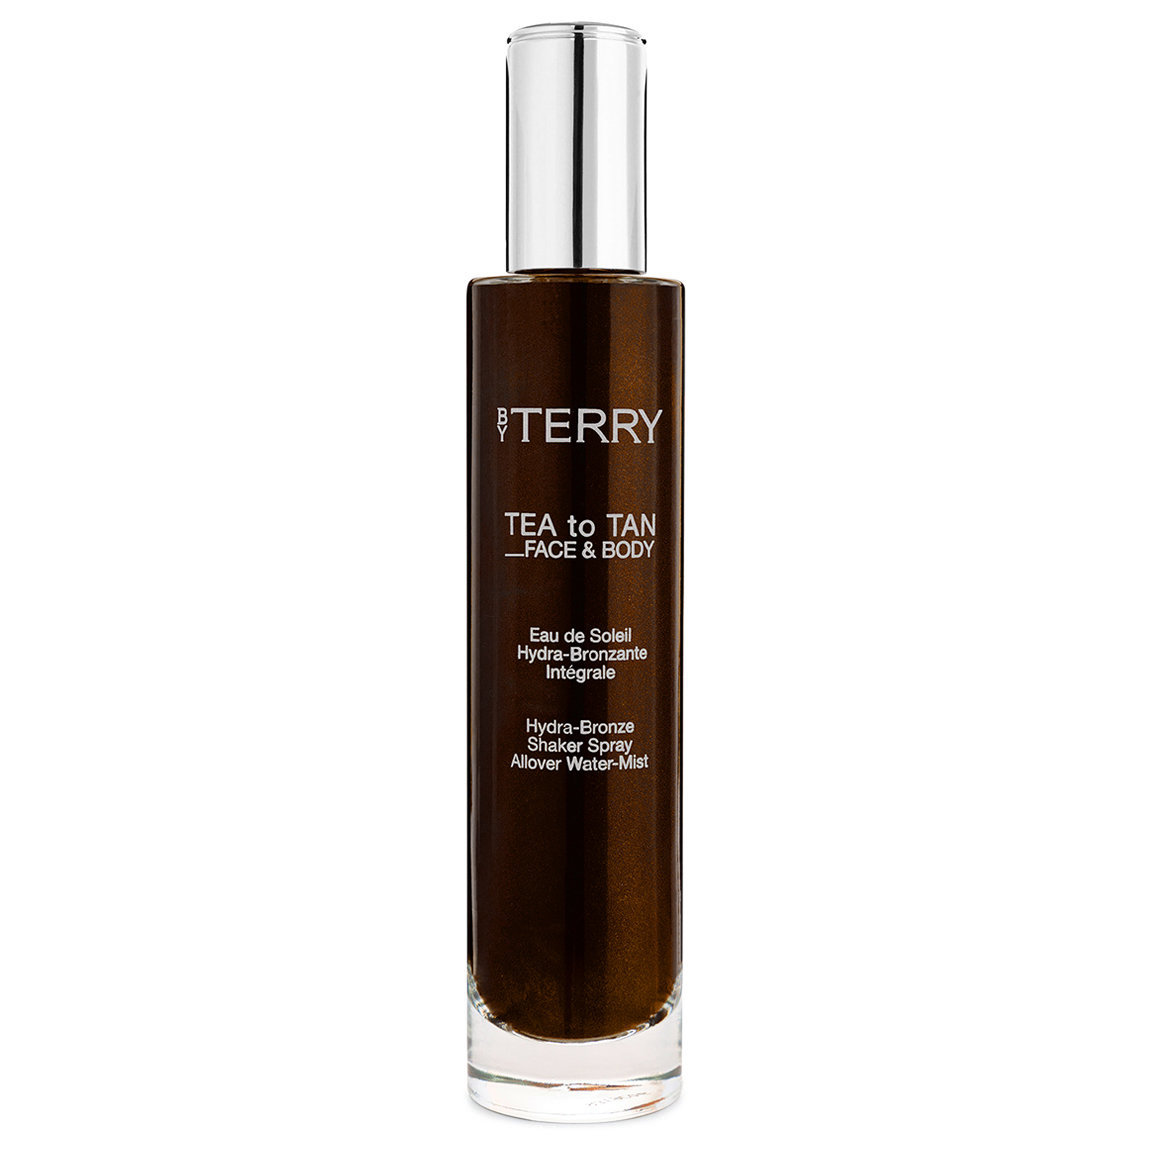 BY TERRY Tea to Tan Face & Body Summer Bronze 100 ml alternative view 1 - product swatch.